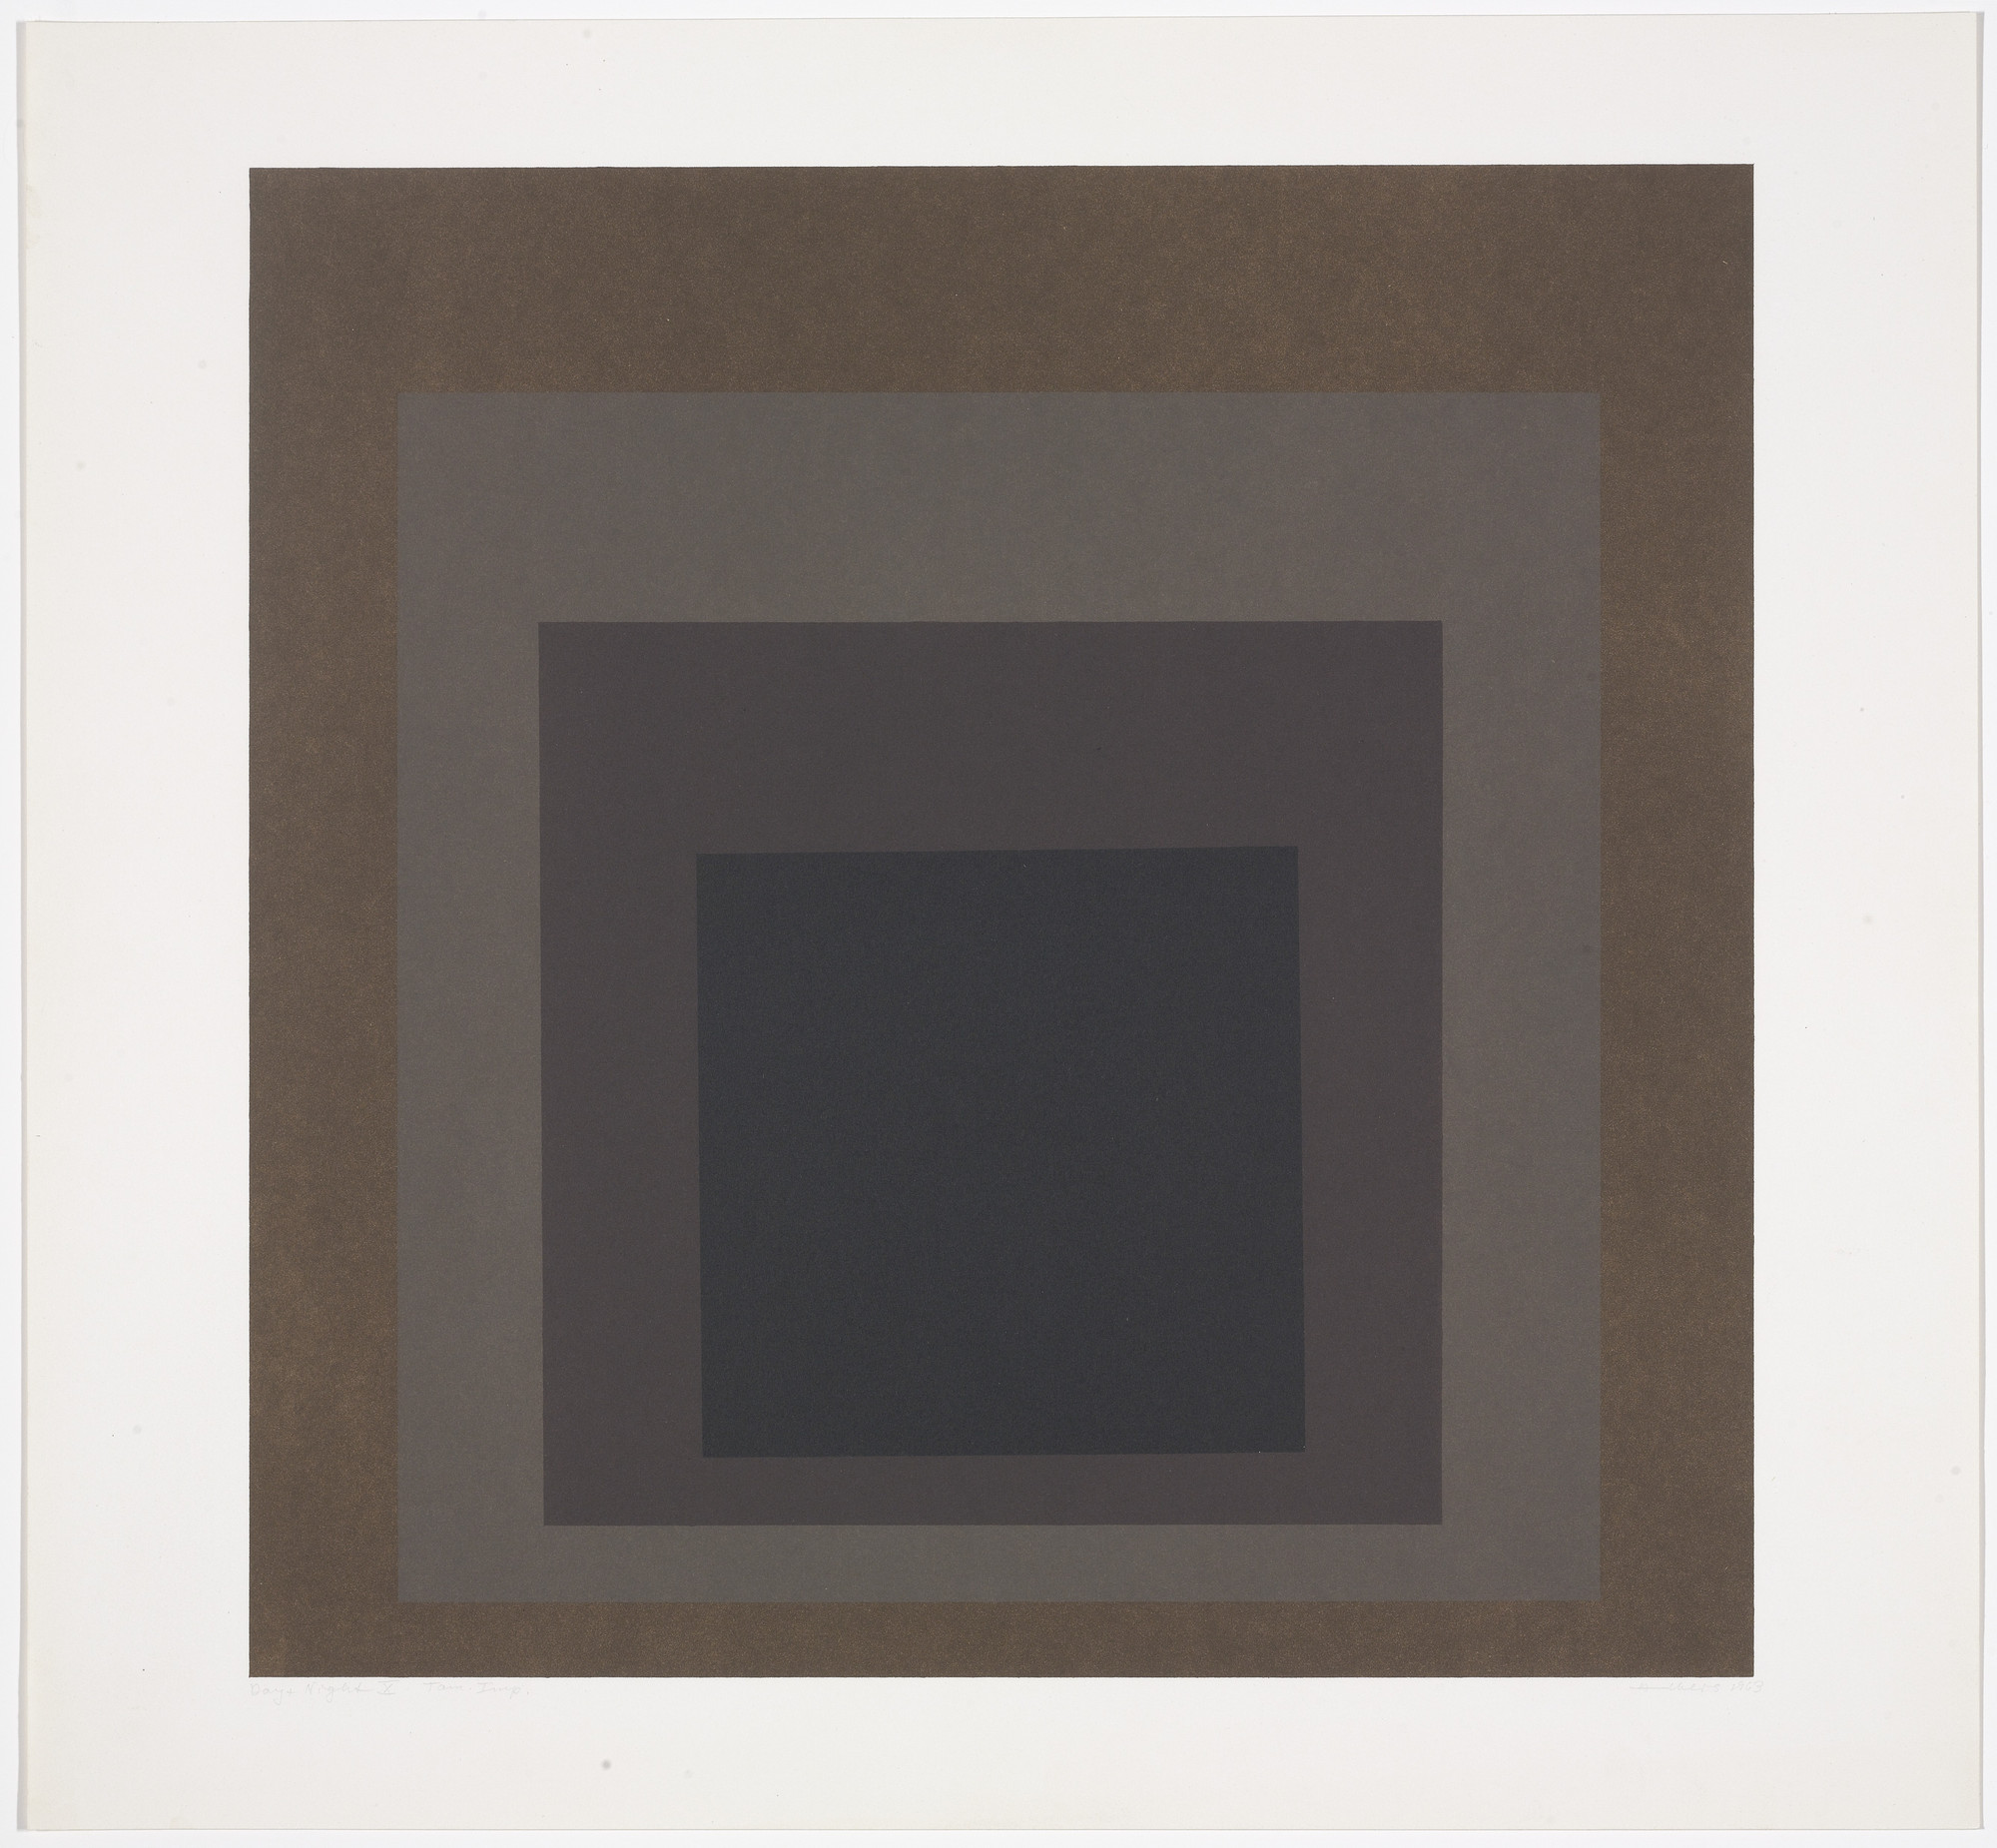 Josef Albers. Day + Night X from Day and Night: Homage to the Square. 1963